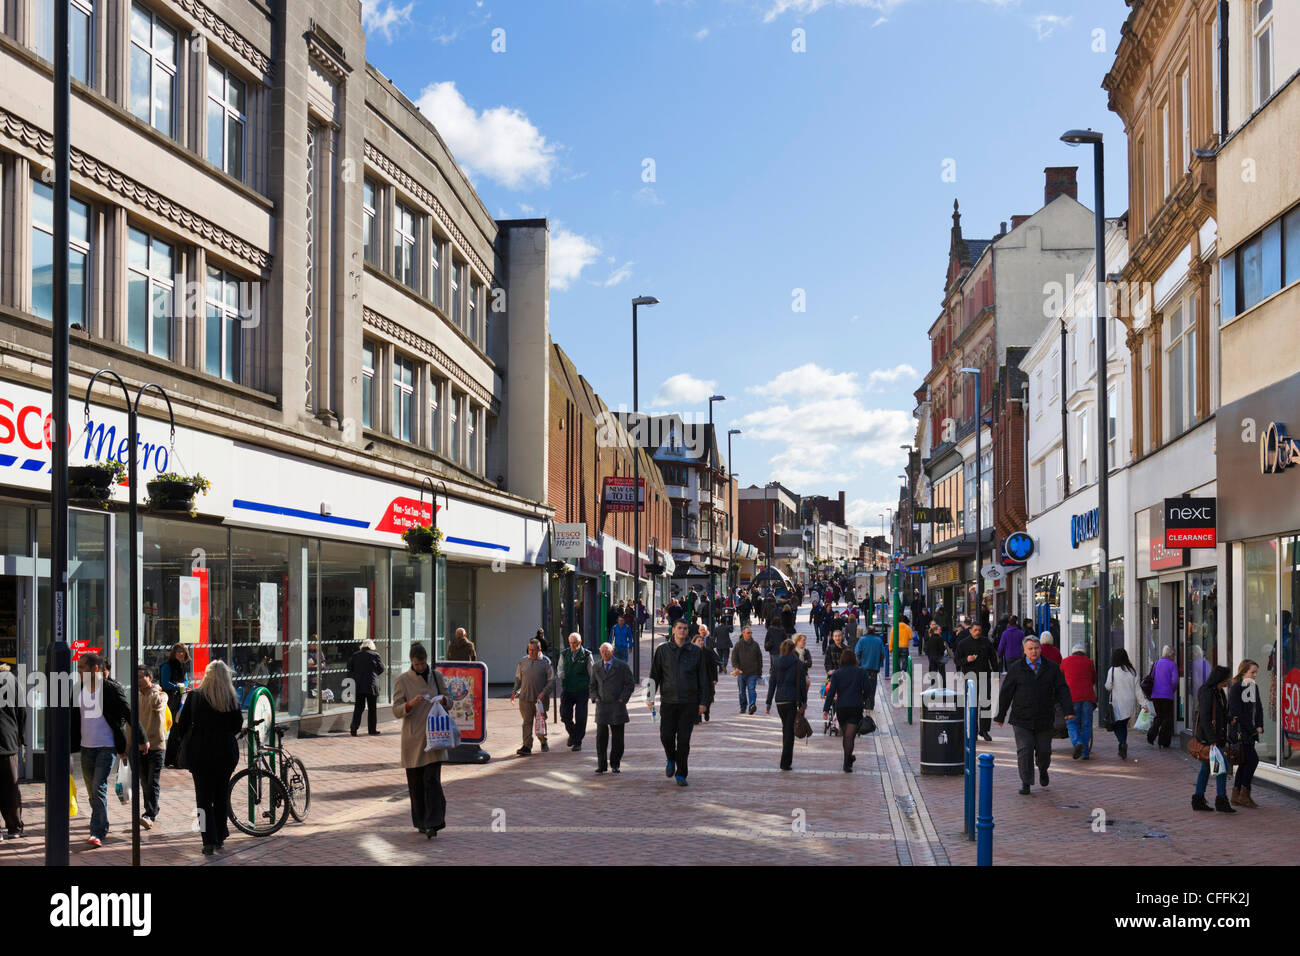 Shops on St Peters Street in the city centre, Derby, Derbyshire, East Midlands, England, UK - Stock Image